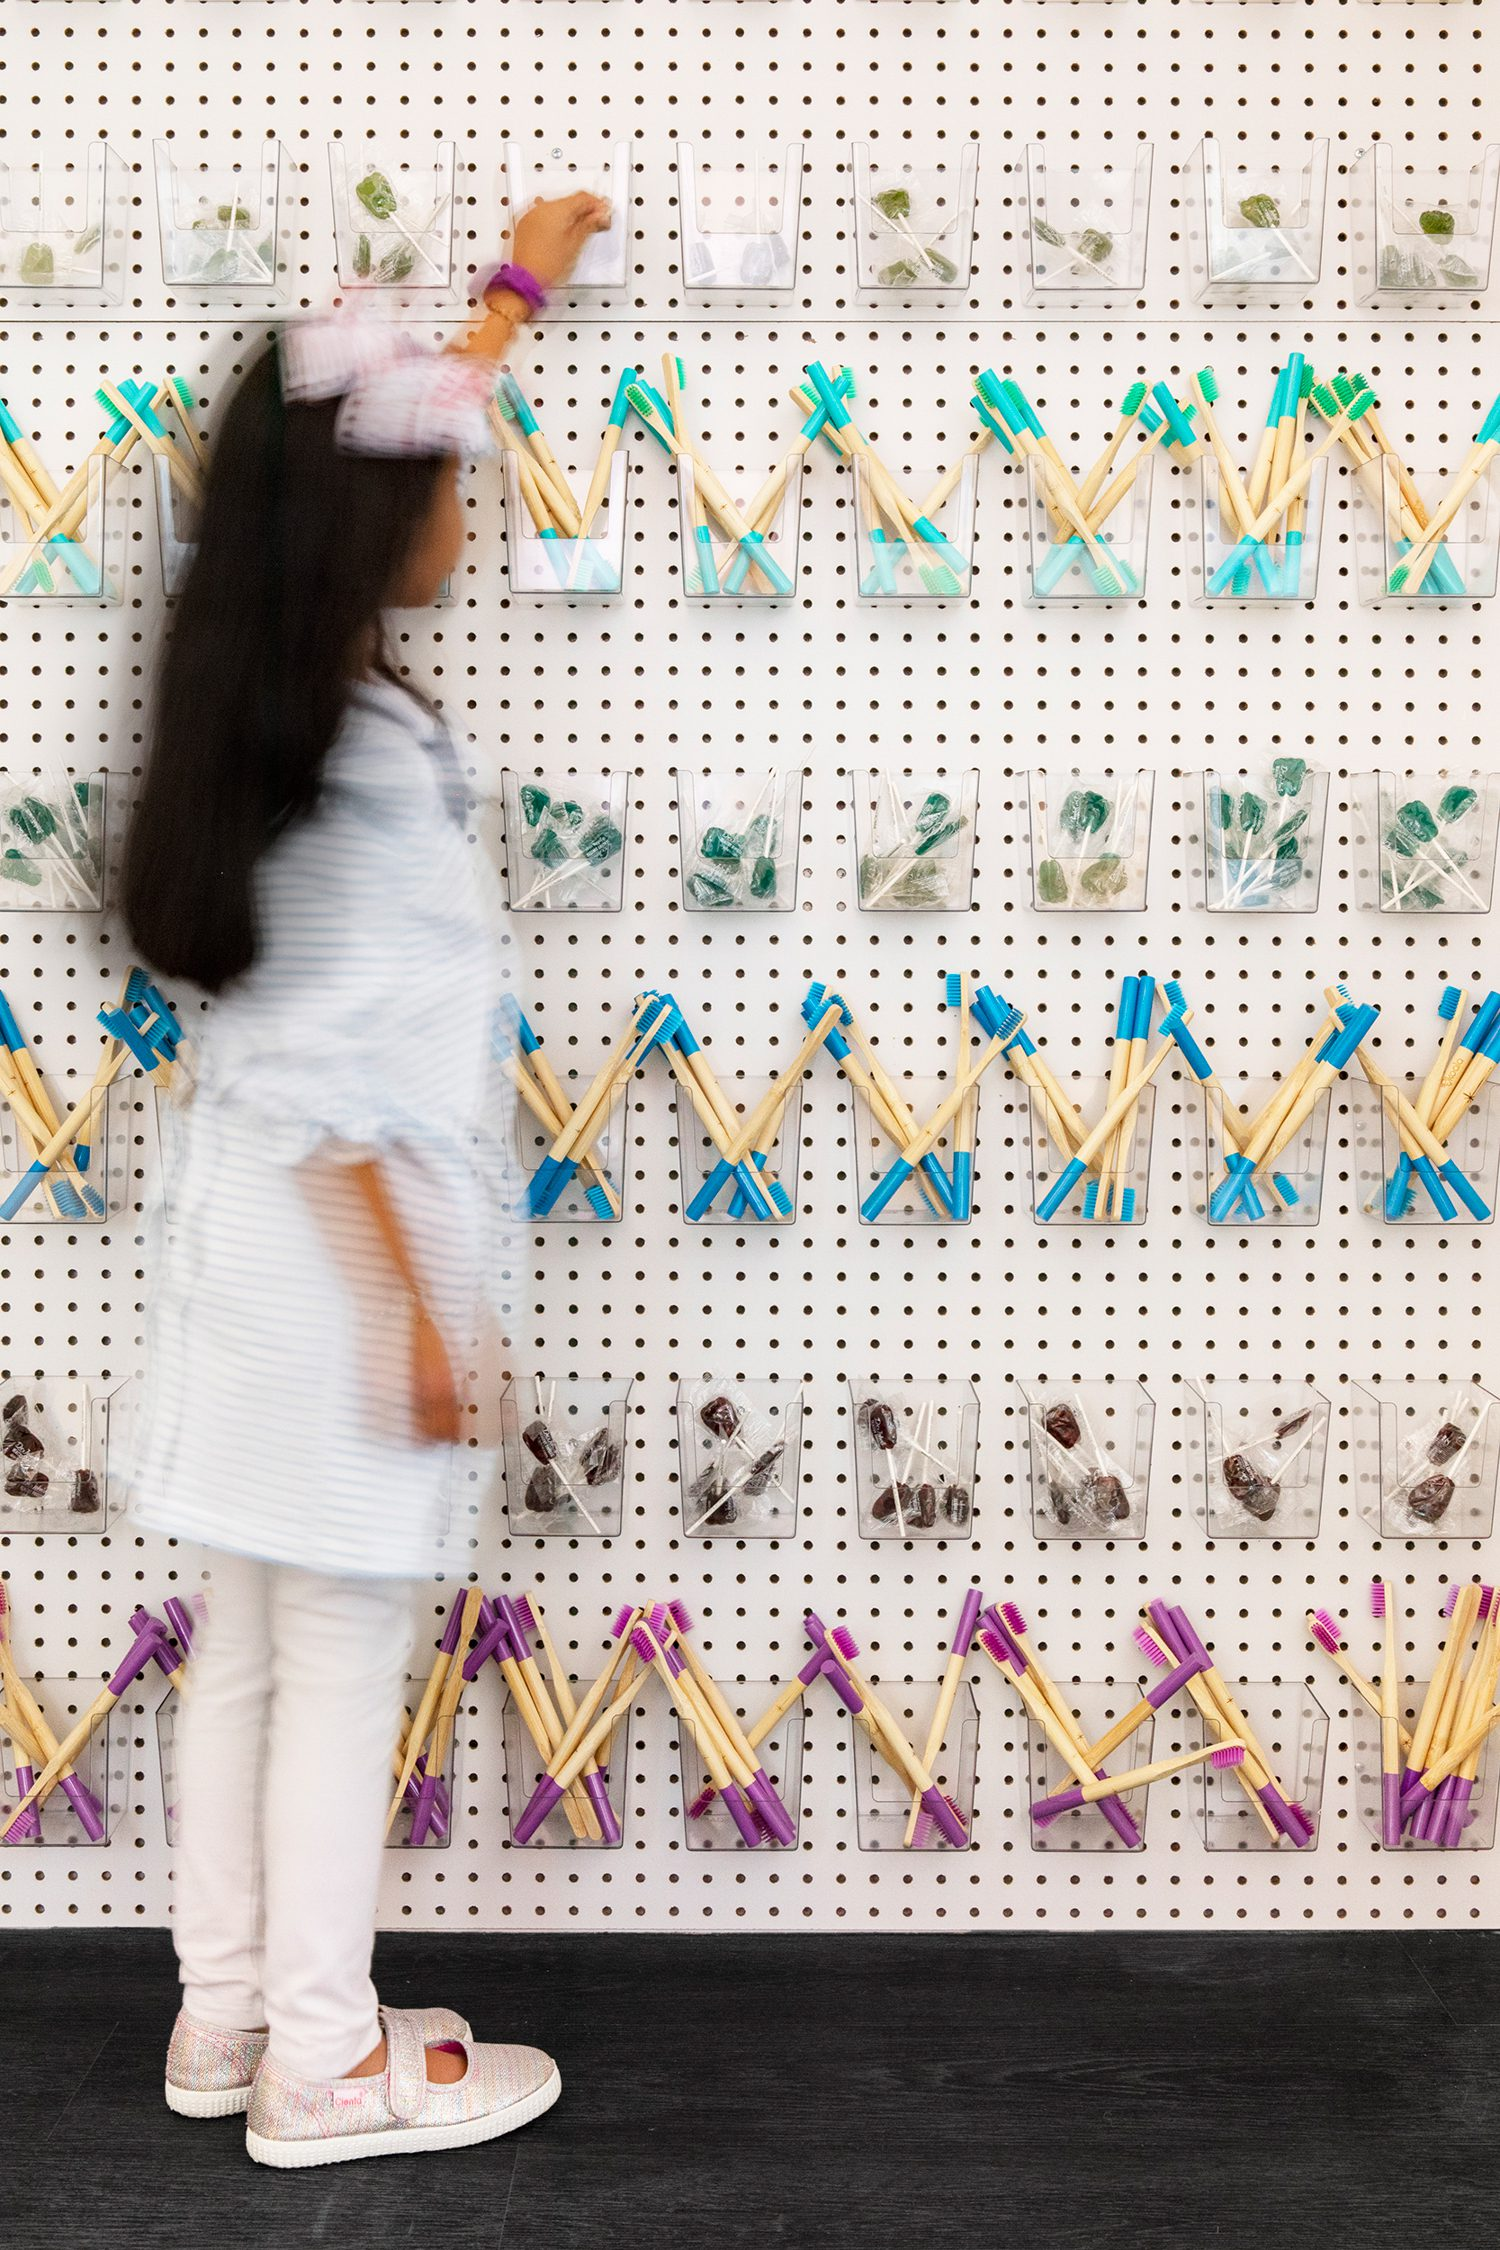 A pegboard wall offers treats for the patients.